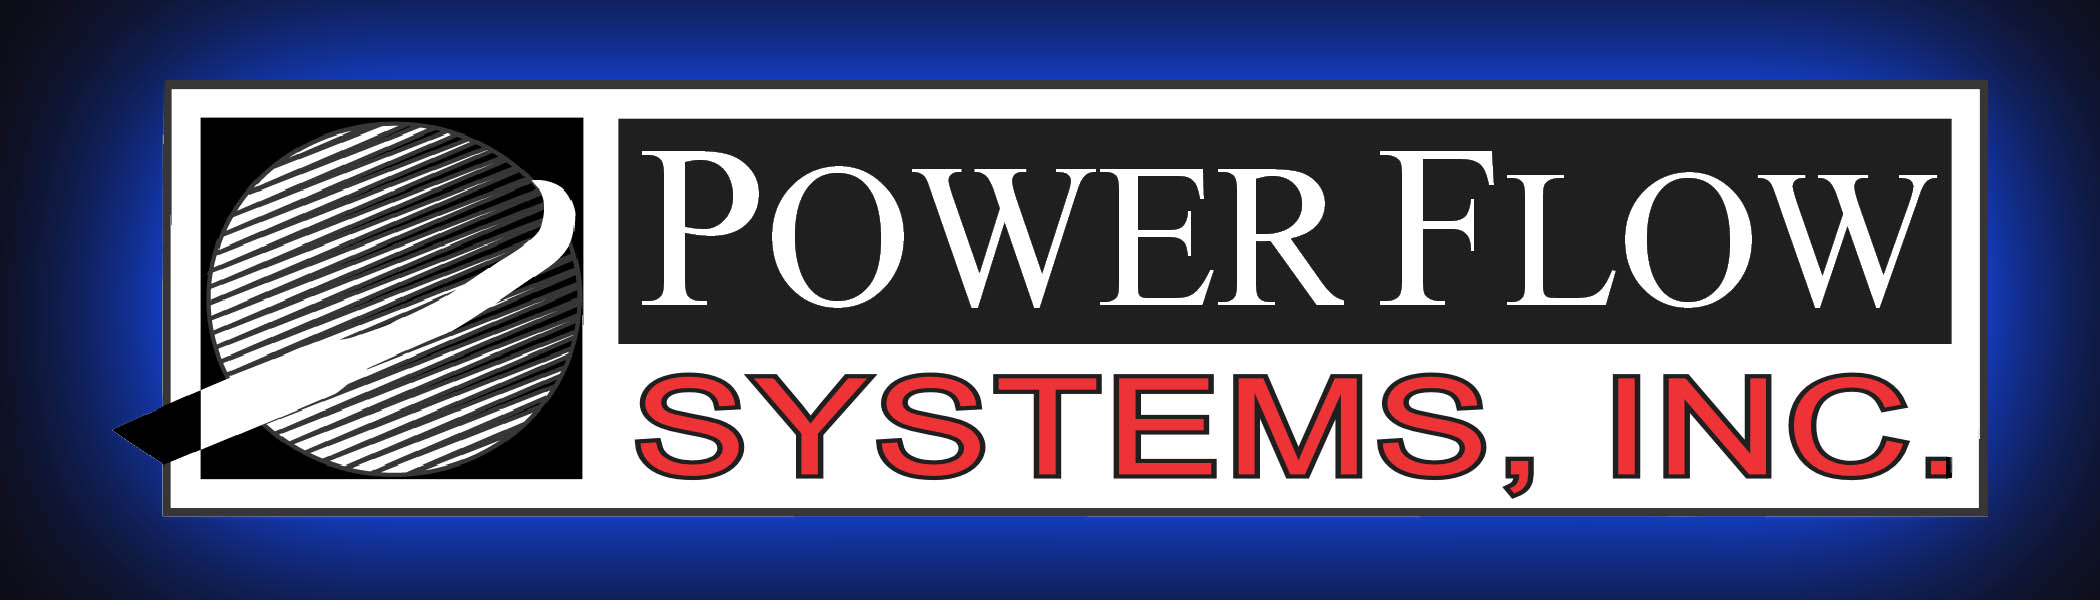 Power Flow Systems, Inc.